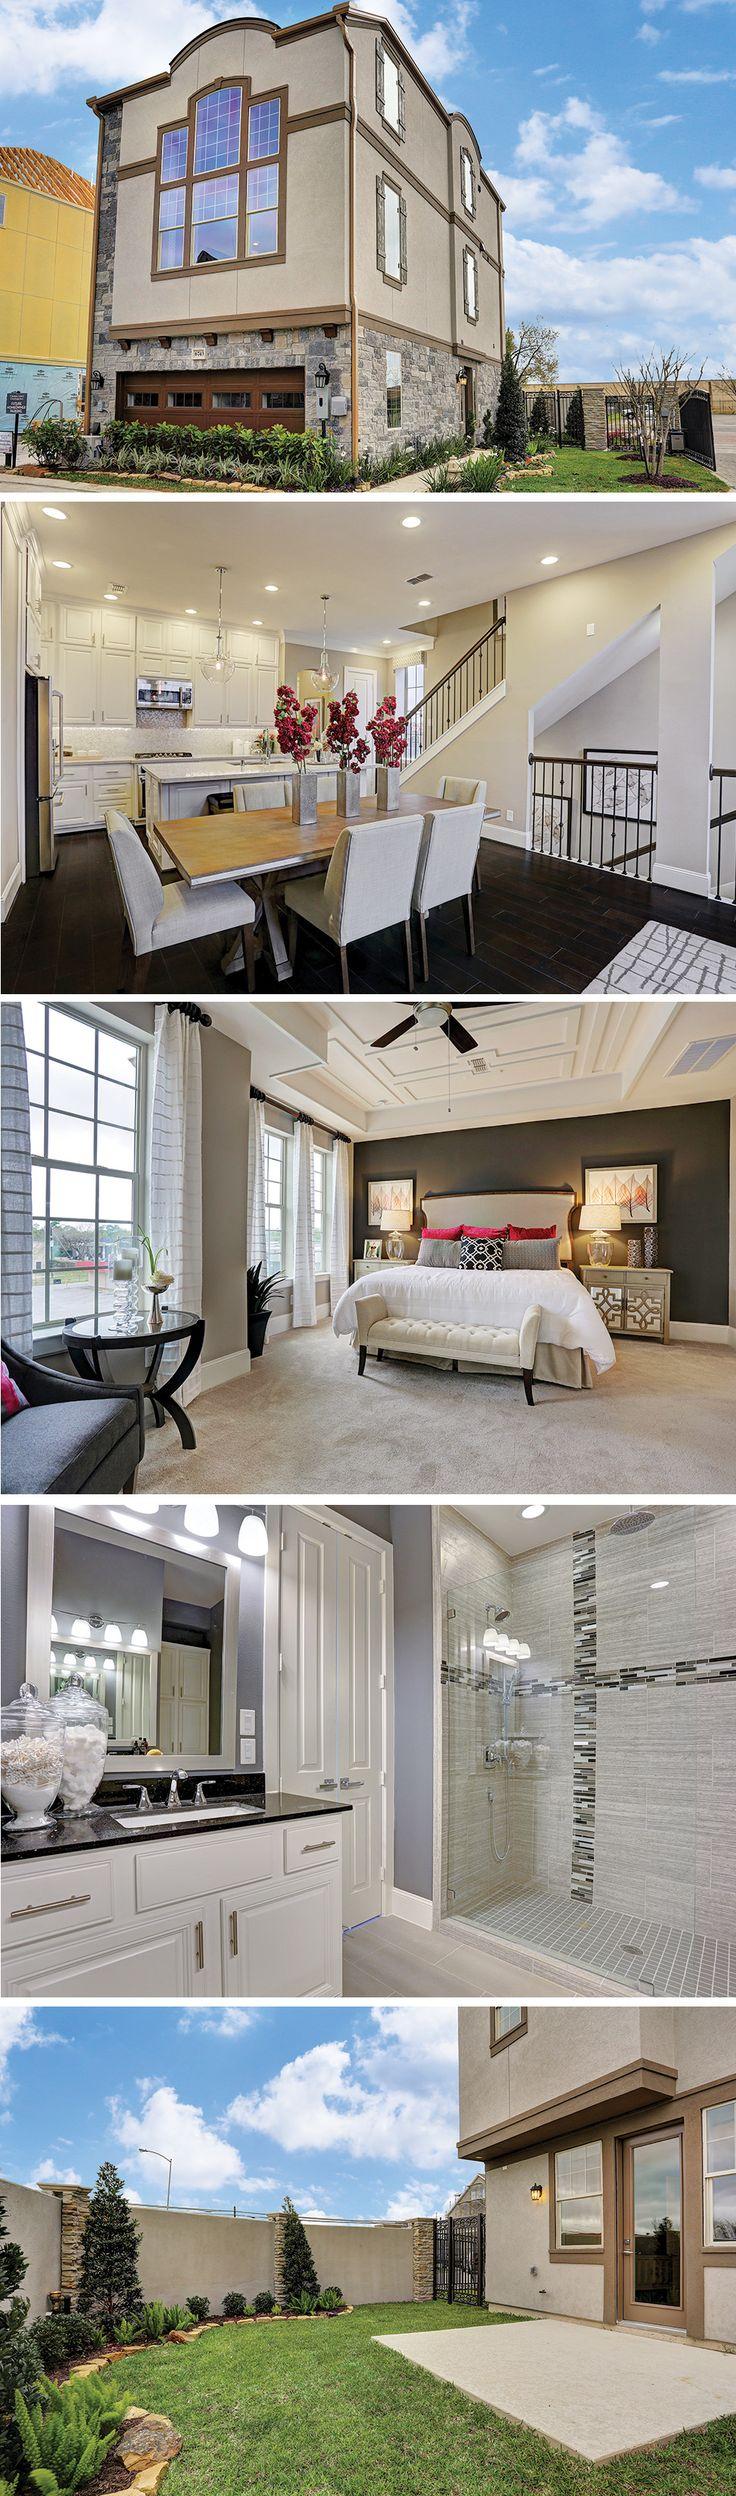 1000 Images About Casas Luxuosas On Pinterest Mansions Master